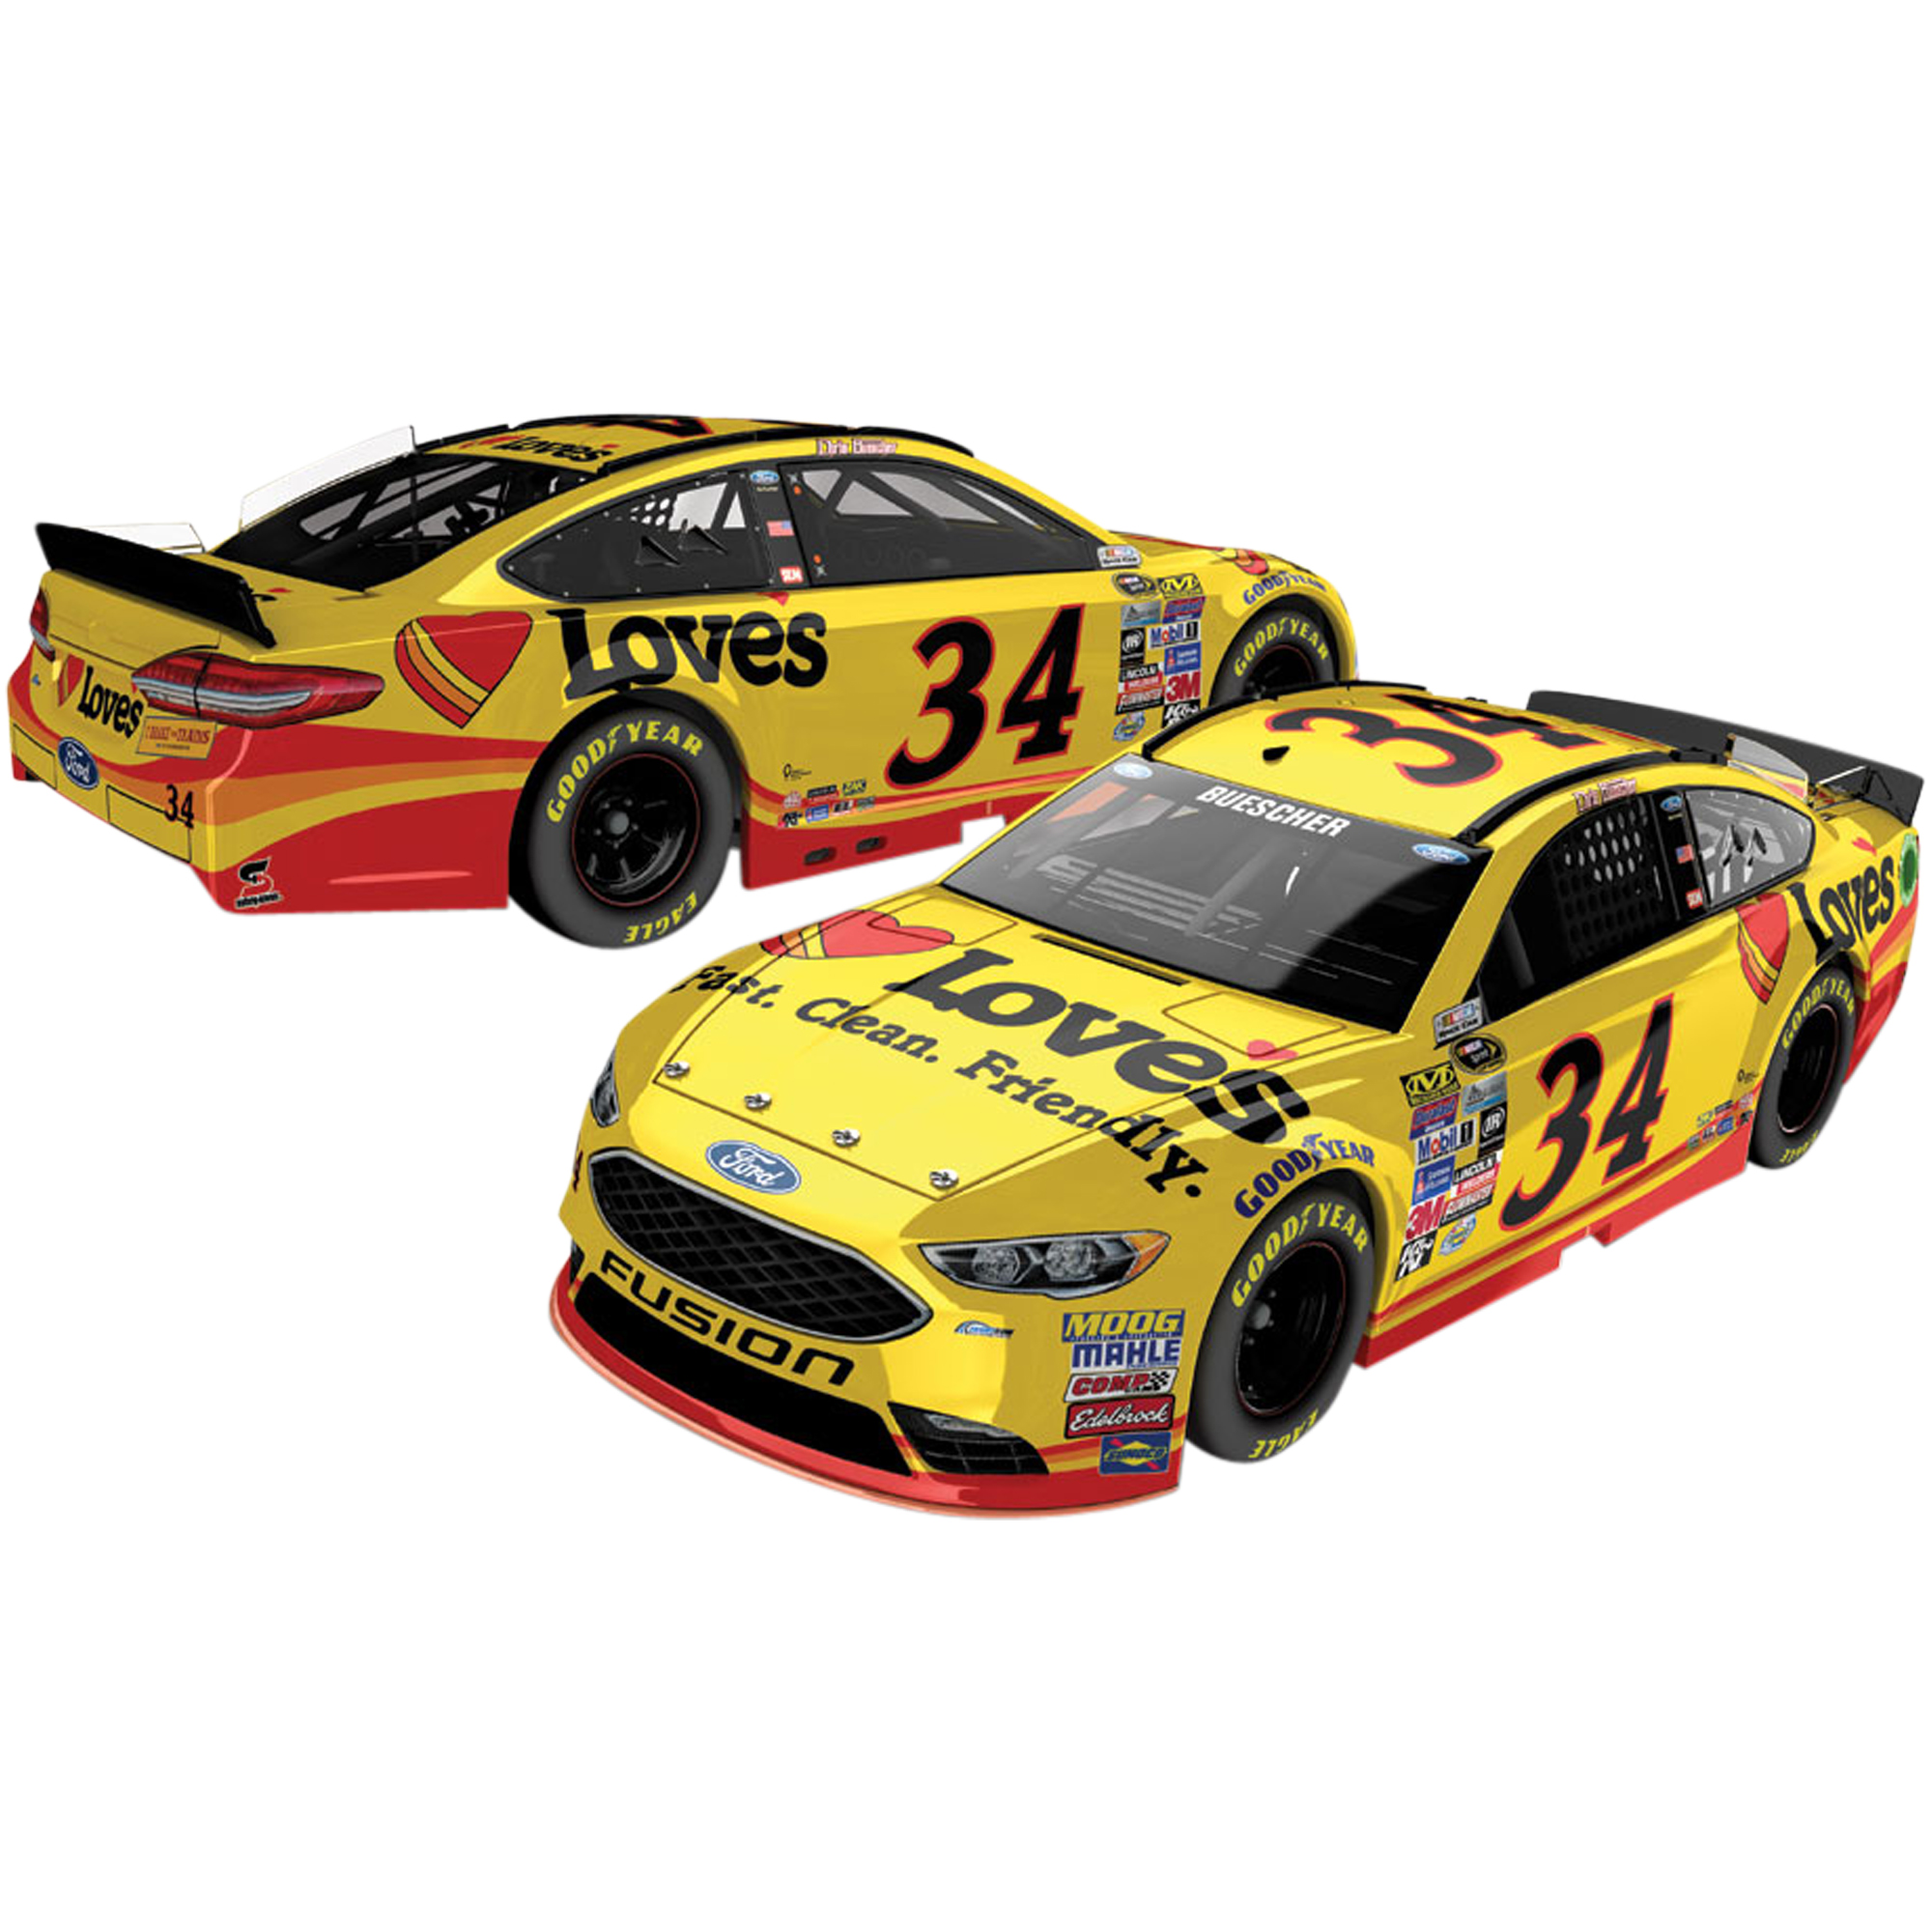 Chris Buescher 2016 #34 Love's 1:24 Nascar Regular Paint Die-Cast Car No Size by Lionel LLC